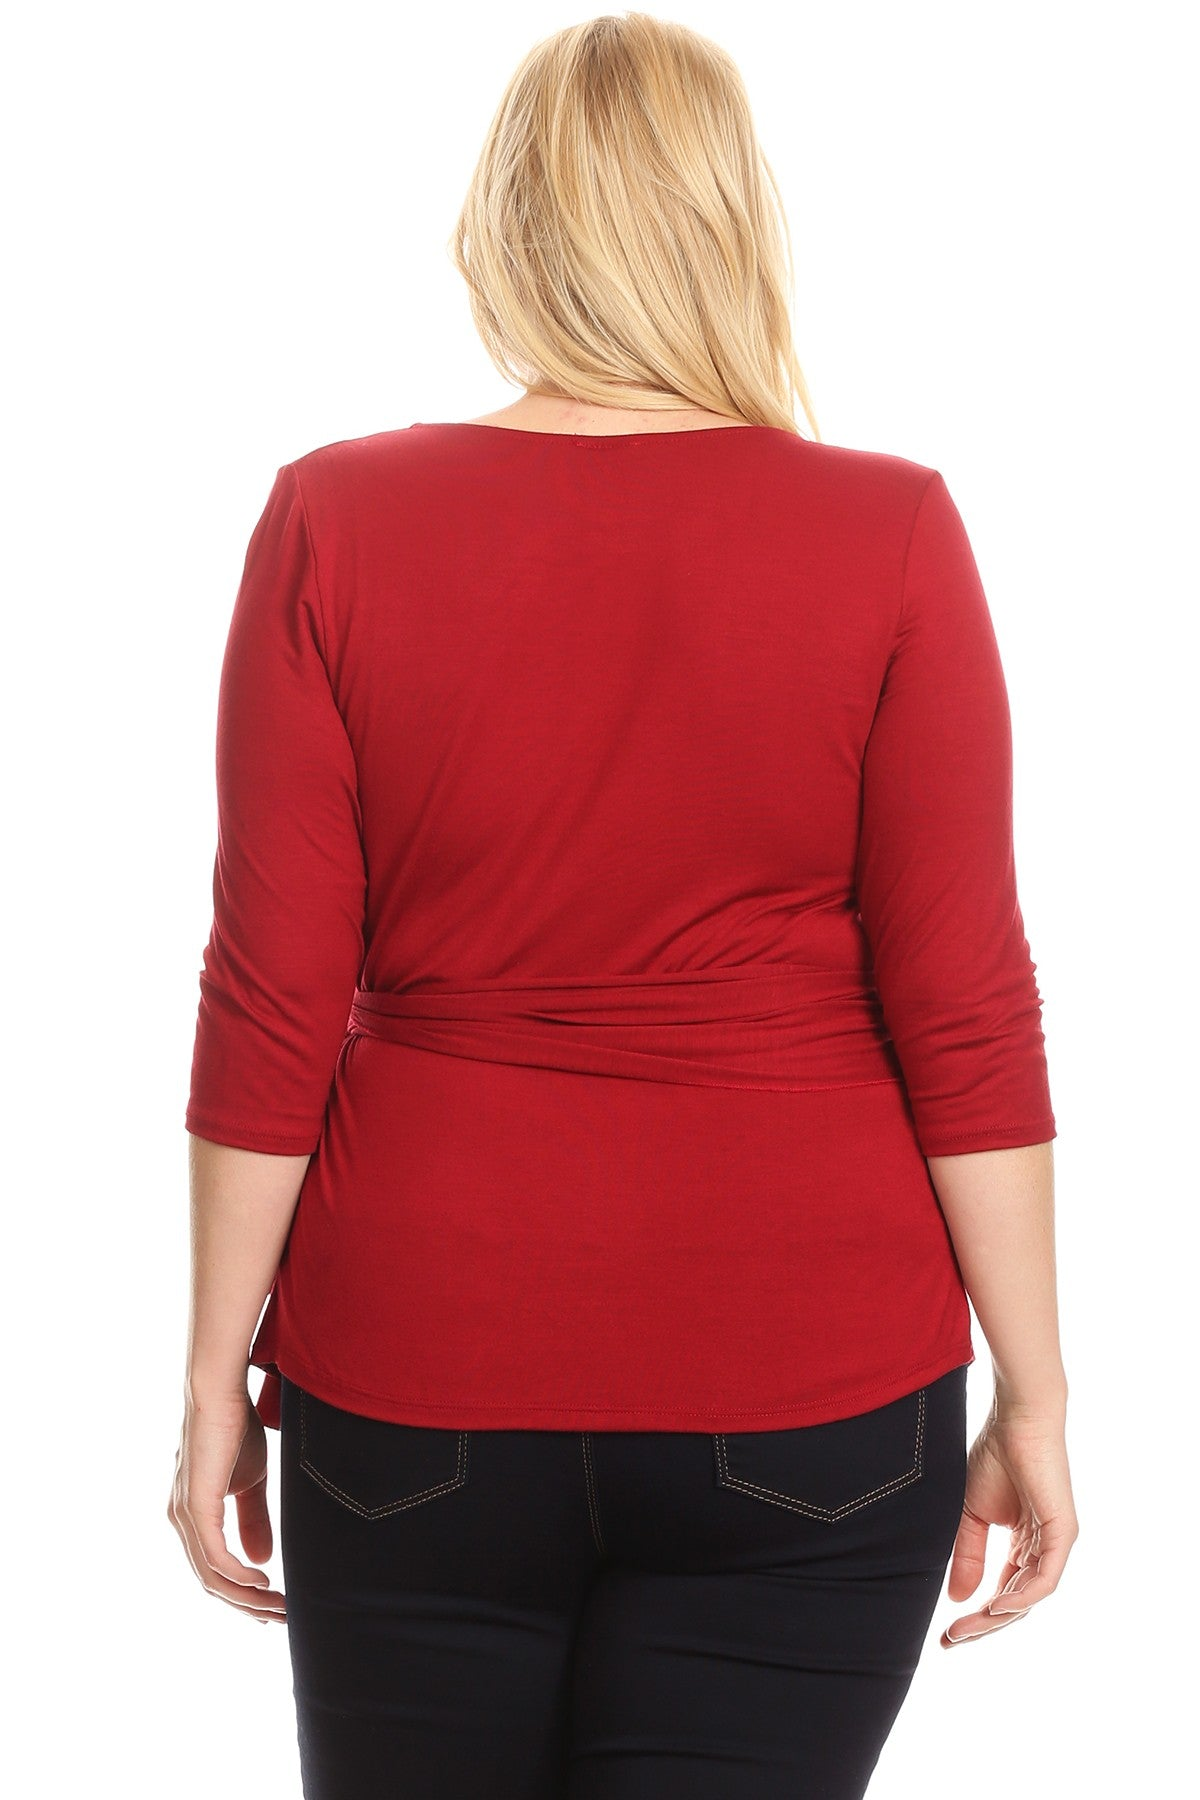 Lilian Waist Tie 3/4 Sleeve Fitted Wrap Asymmetrical Top